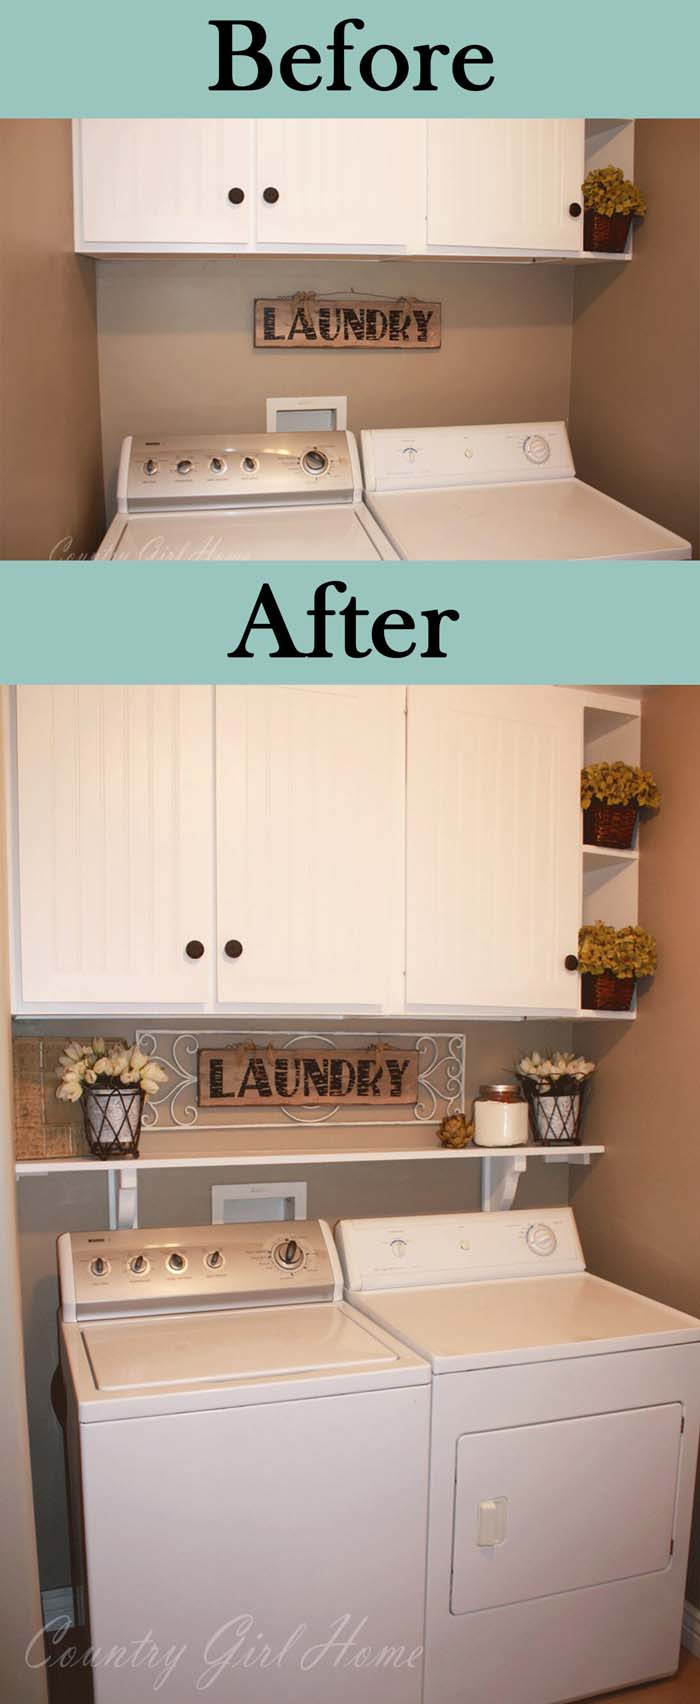 One Added Shelf can make All the Difference #laundryroom #makeover #decorhomeideas